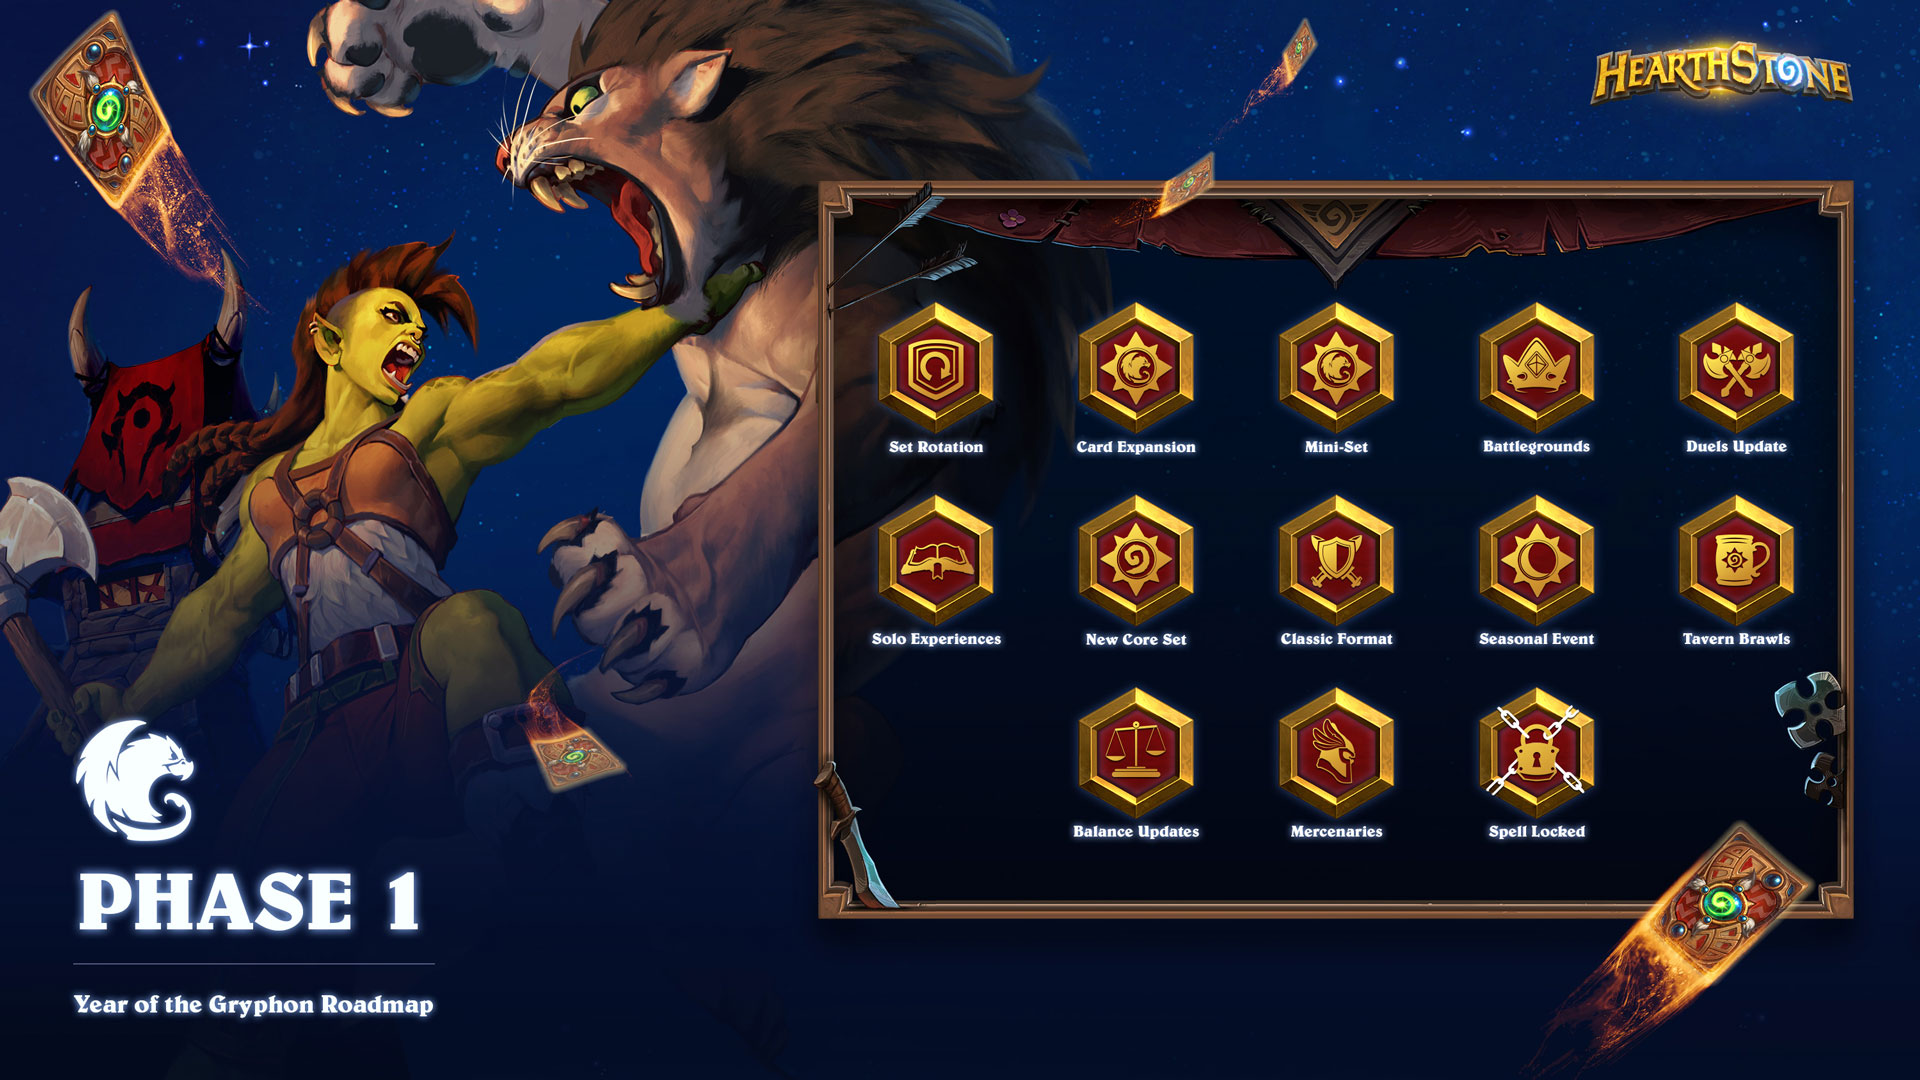 a drilldown image of phase 1 of the year of the gryphon roadmap